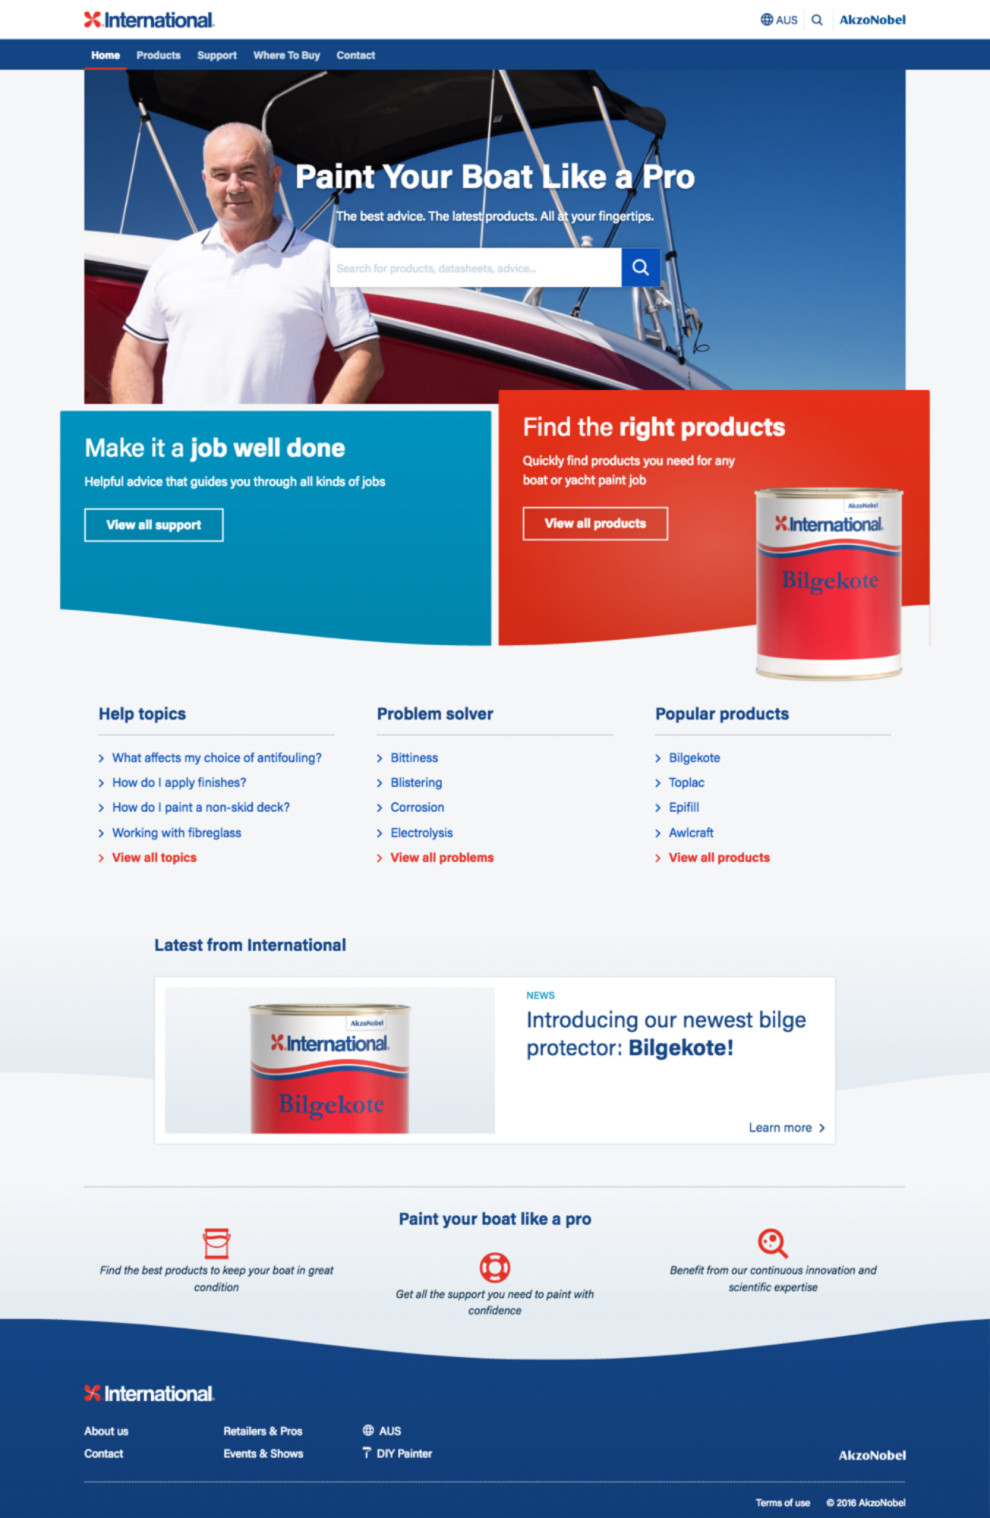 AkzoNobel International Yachtpaint front